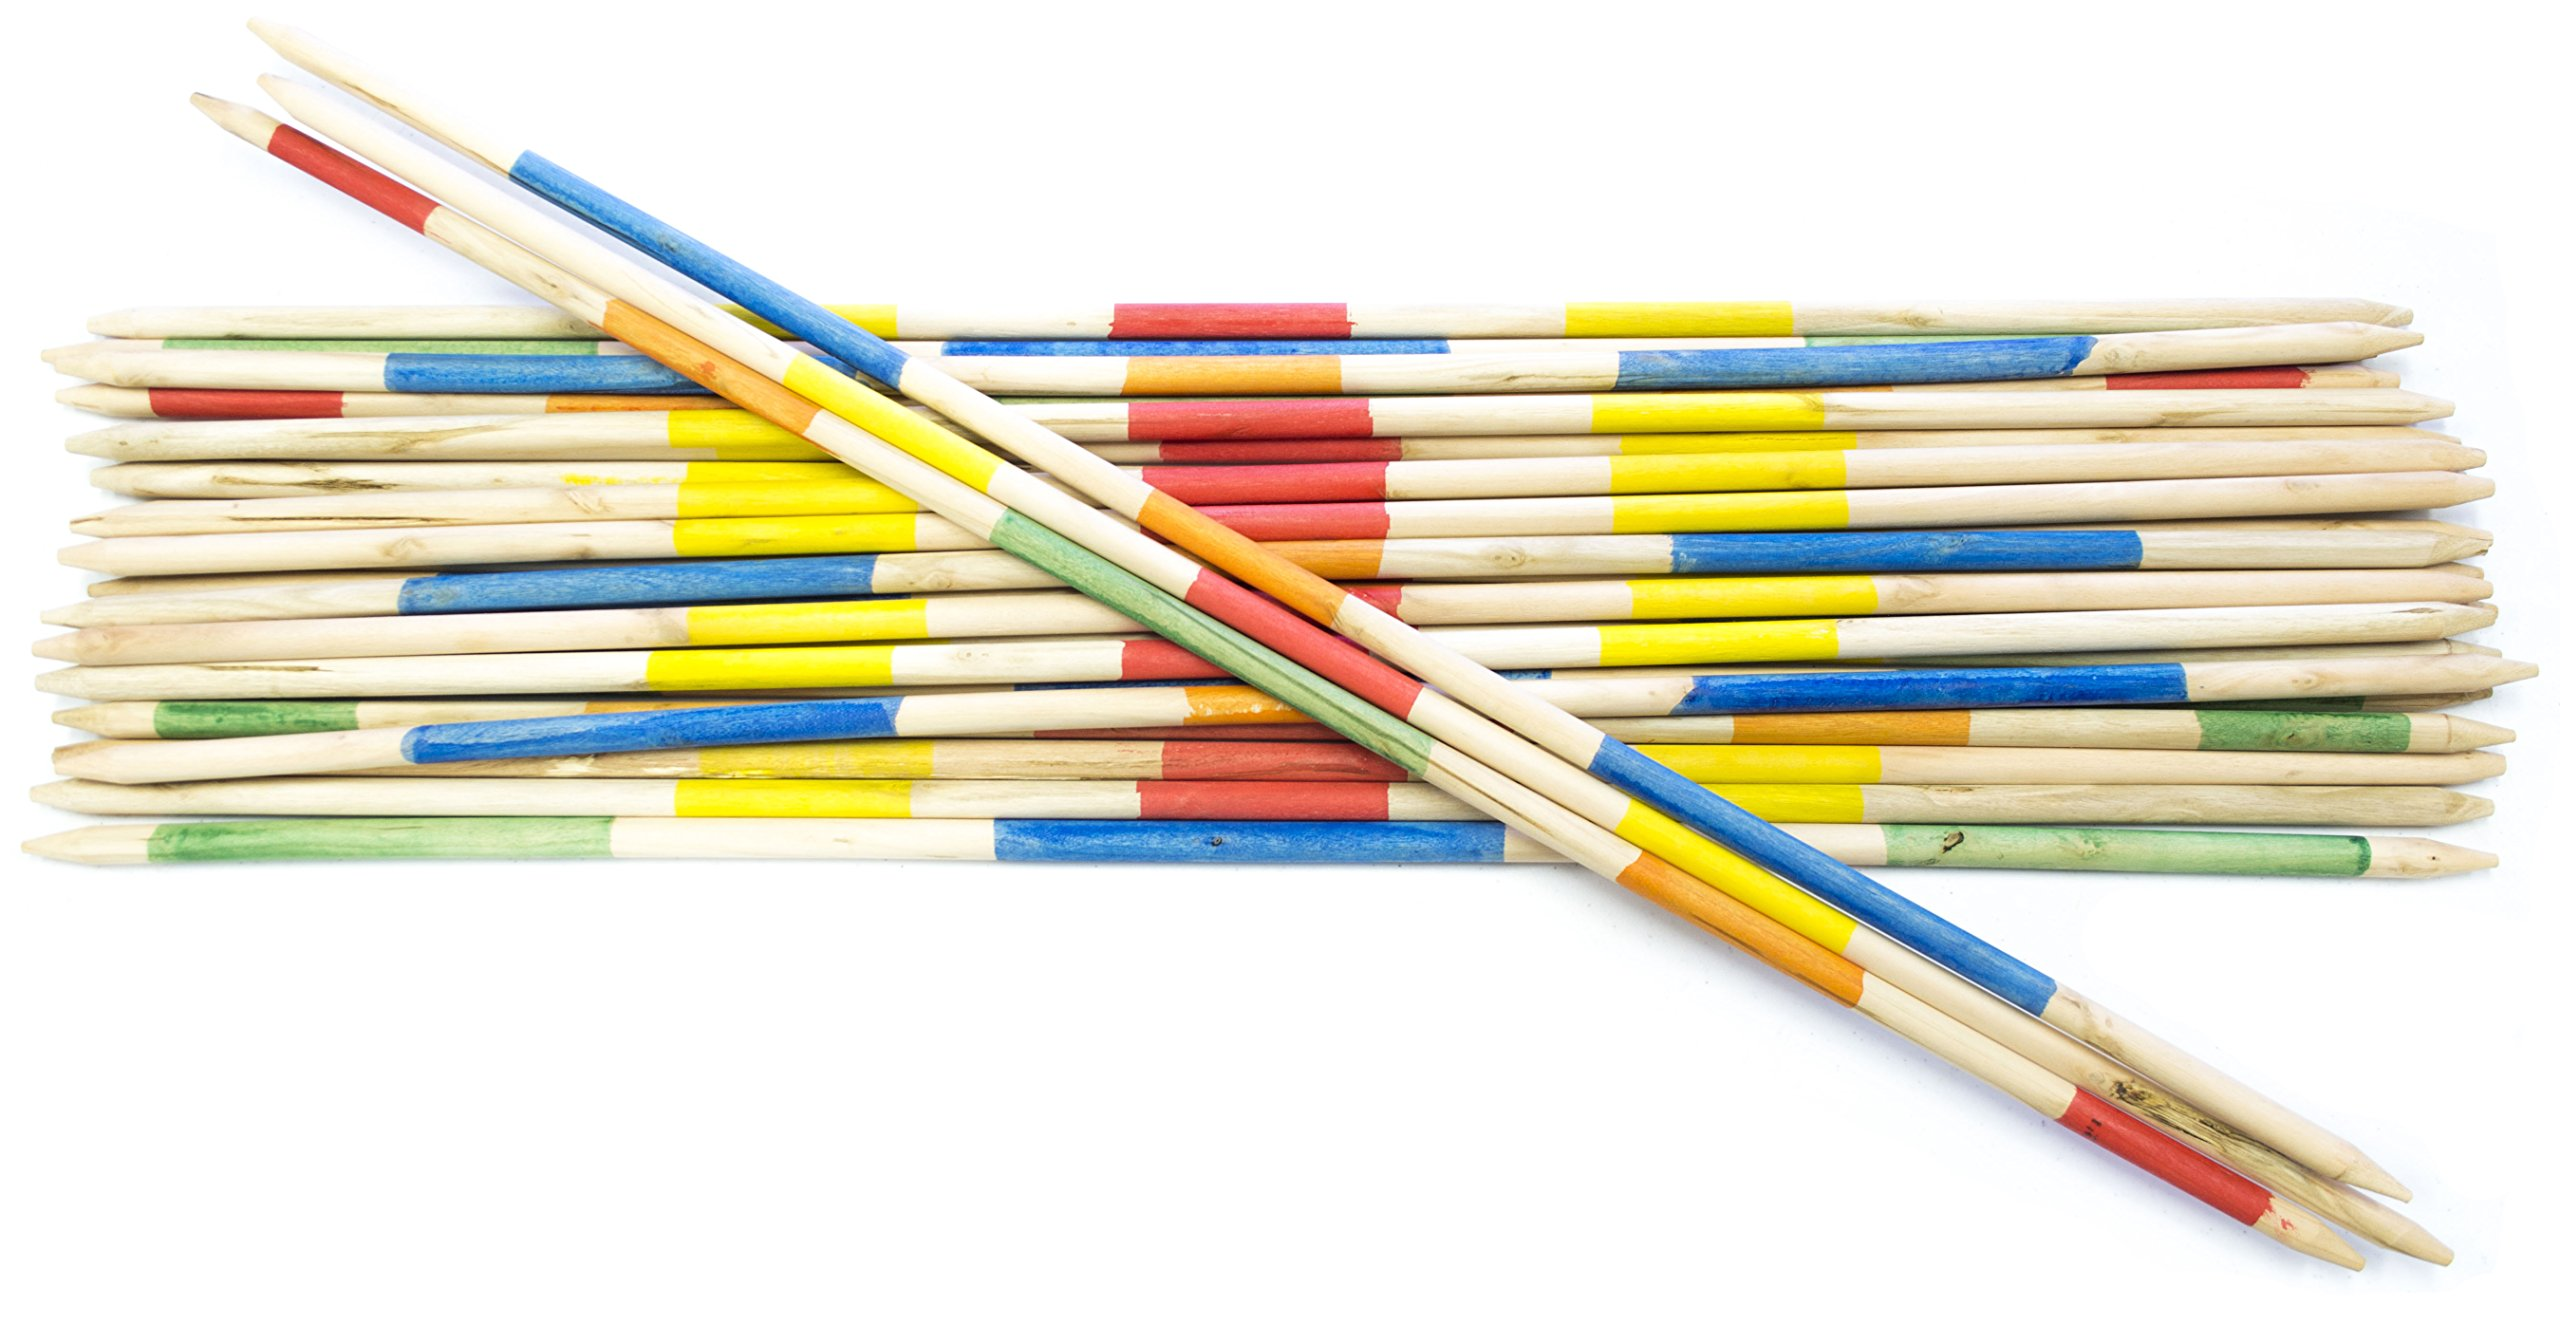 Striker Games - Mikado Giant Pick-Up Sticks - Giant Outdoor Games/Outdoor Toys - 35 Inch Wooden Sticks - Factory Defect